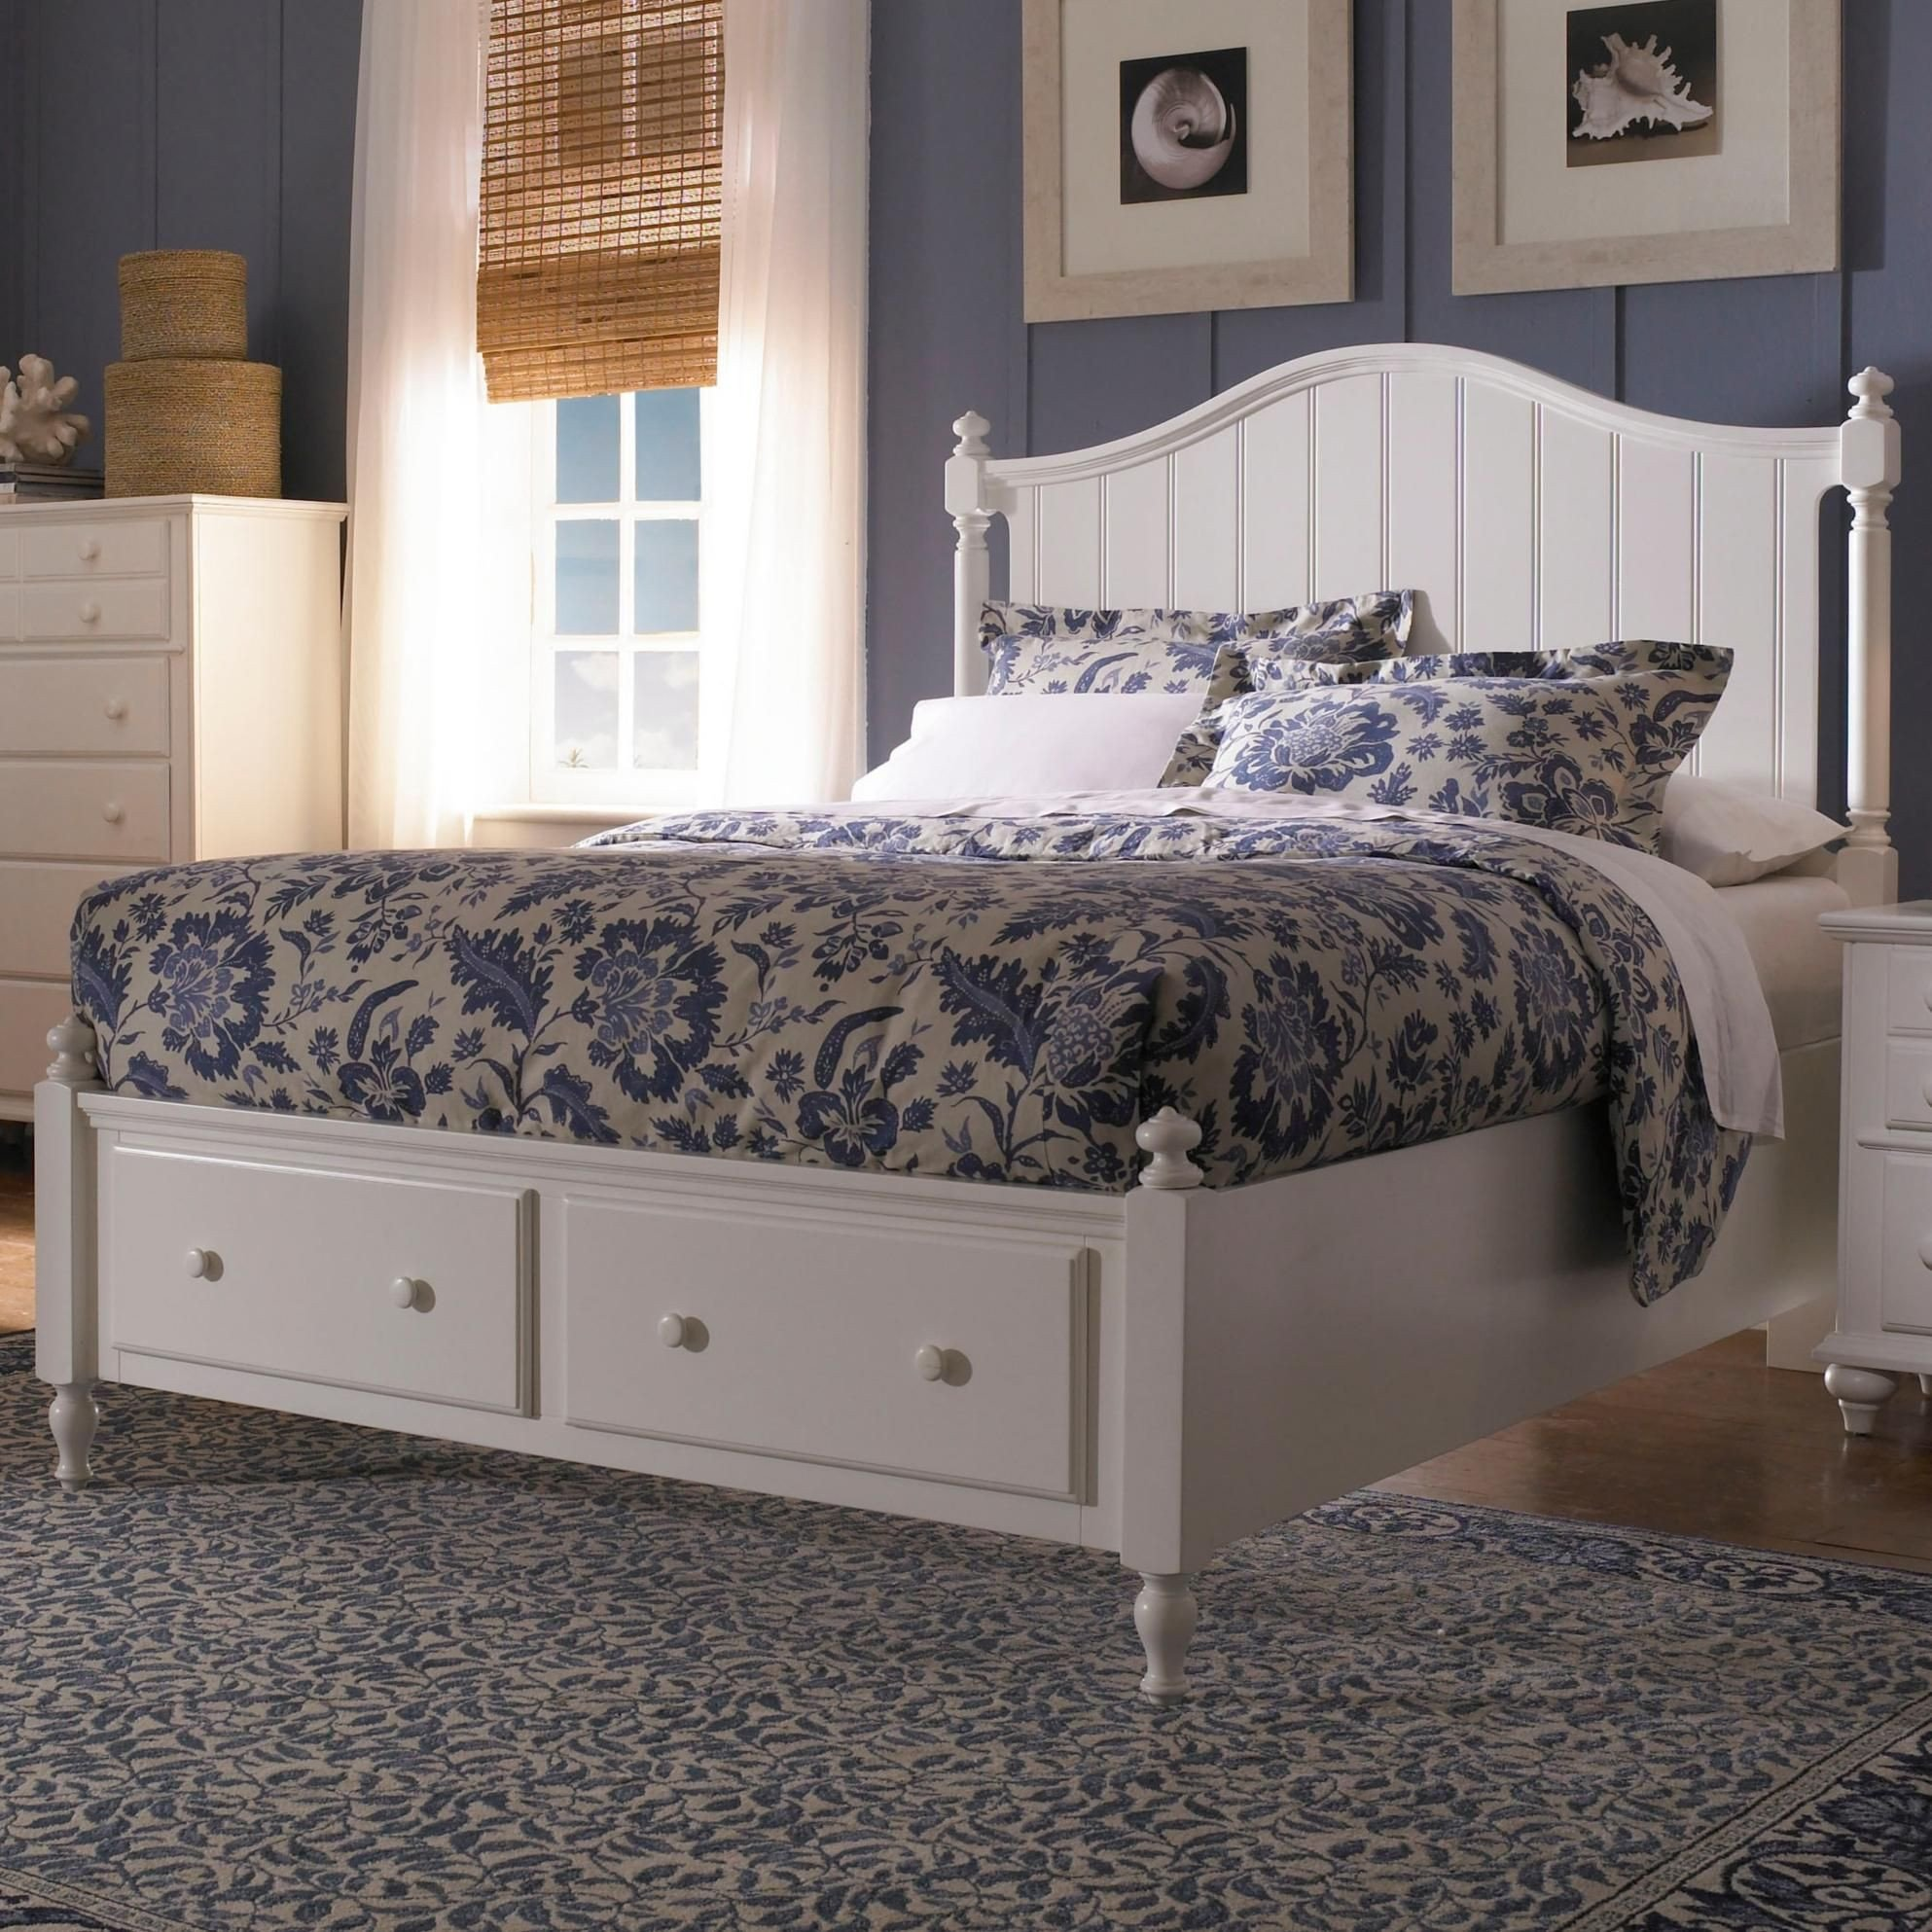 Value City Bedroom Furniture Lovely Hayden Place Queen Headboard and Storage Footboard Bed by